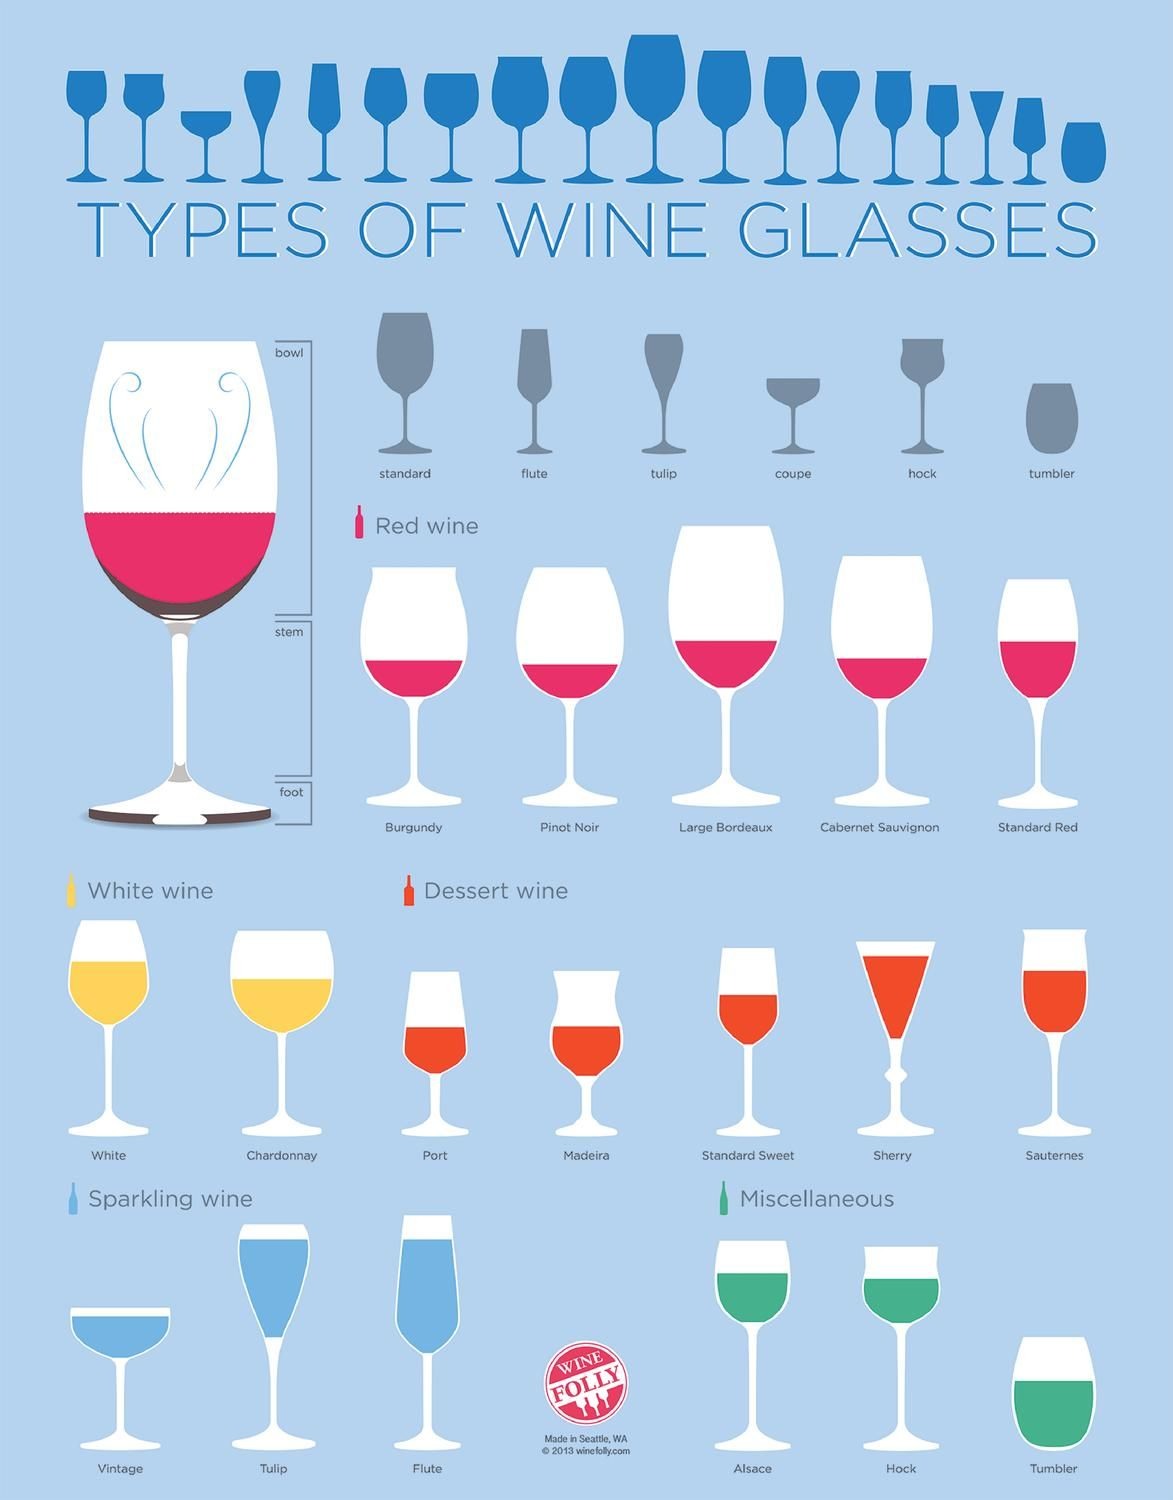 types-of-wine-glasses_53a27c6388418.jpg 1 173×1 500 pikseli